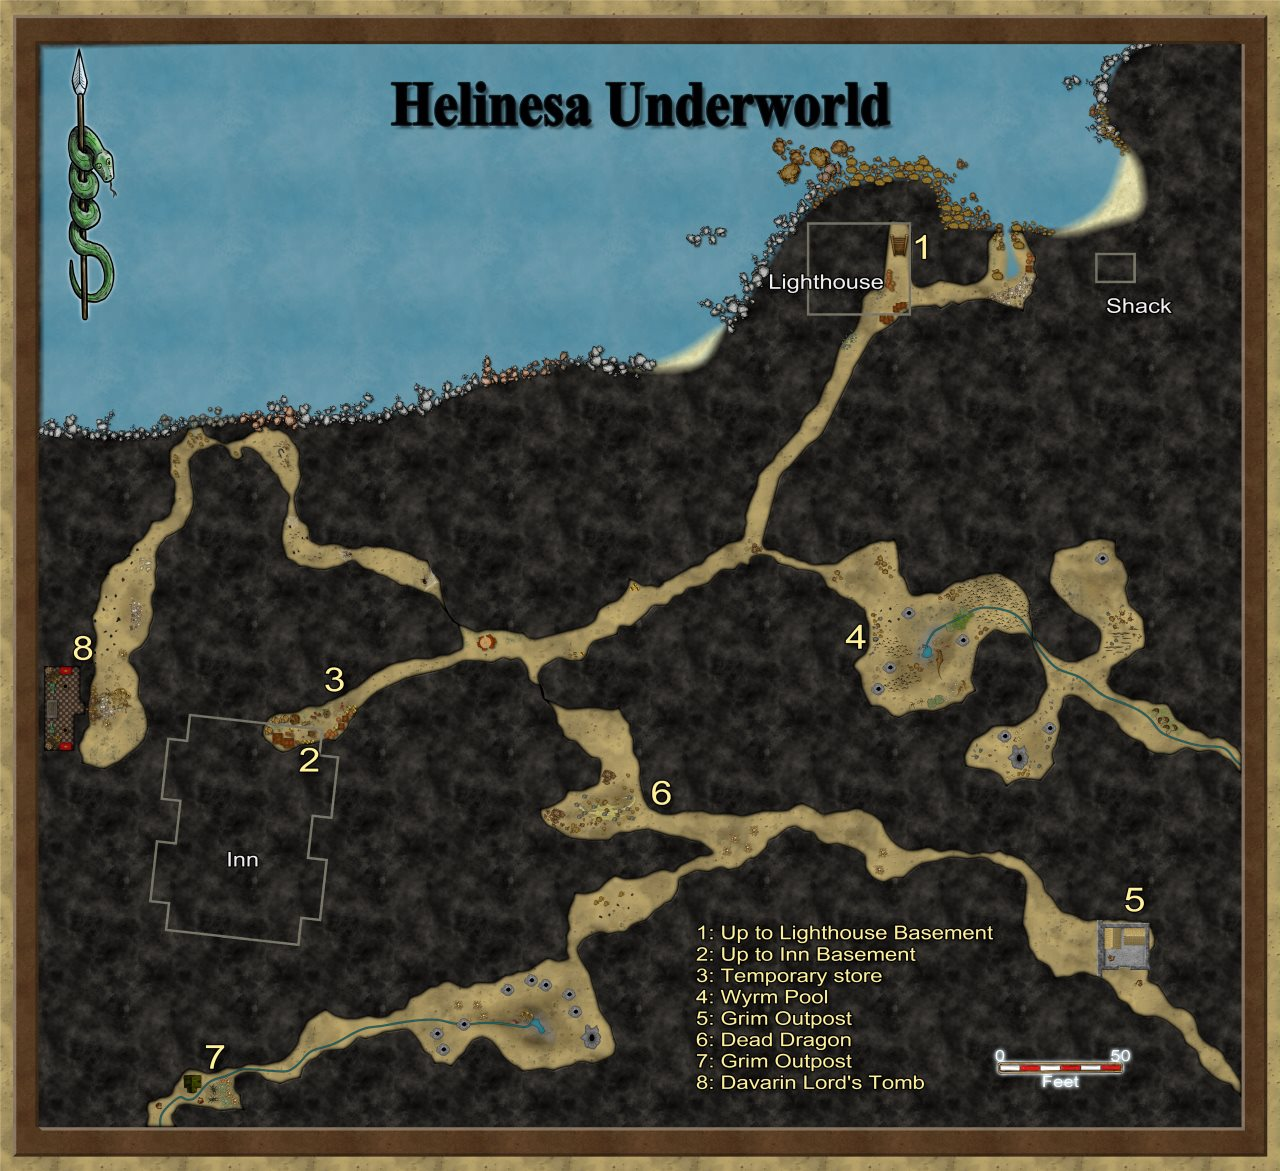 Nibirum Map: helinesa underworld by Quenten Walker